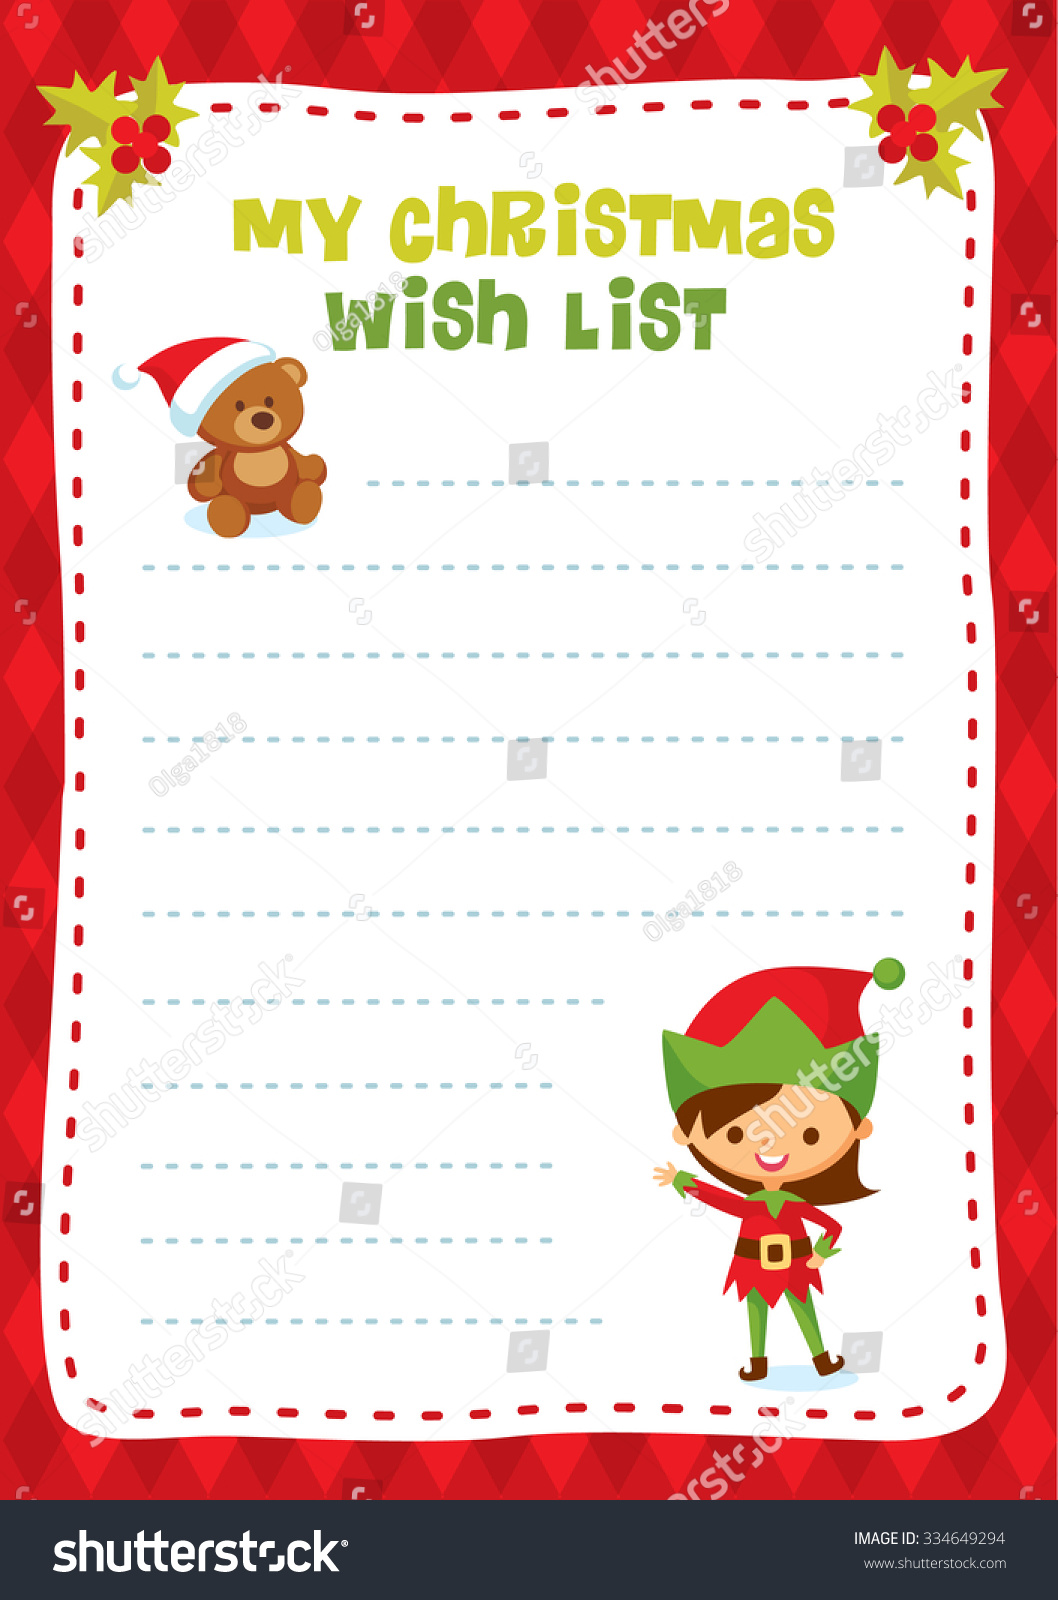 Children Design Christmas Wish List Stock Vector Royalty Free 334649294